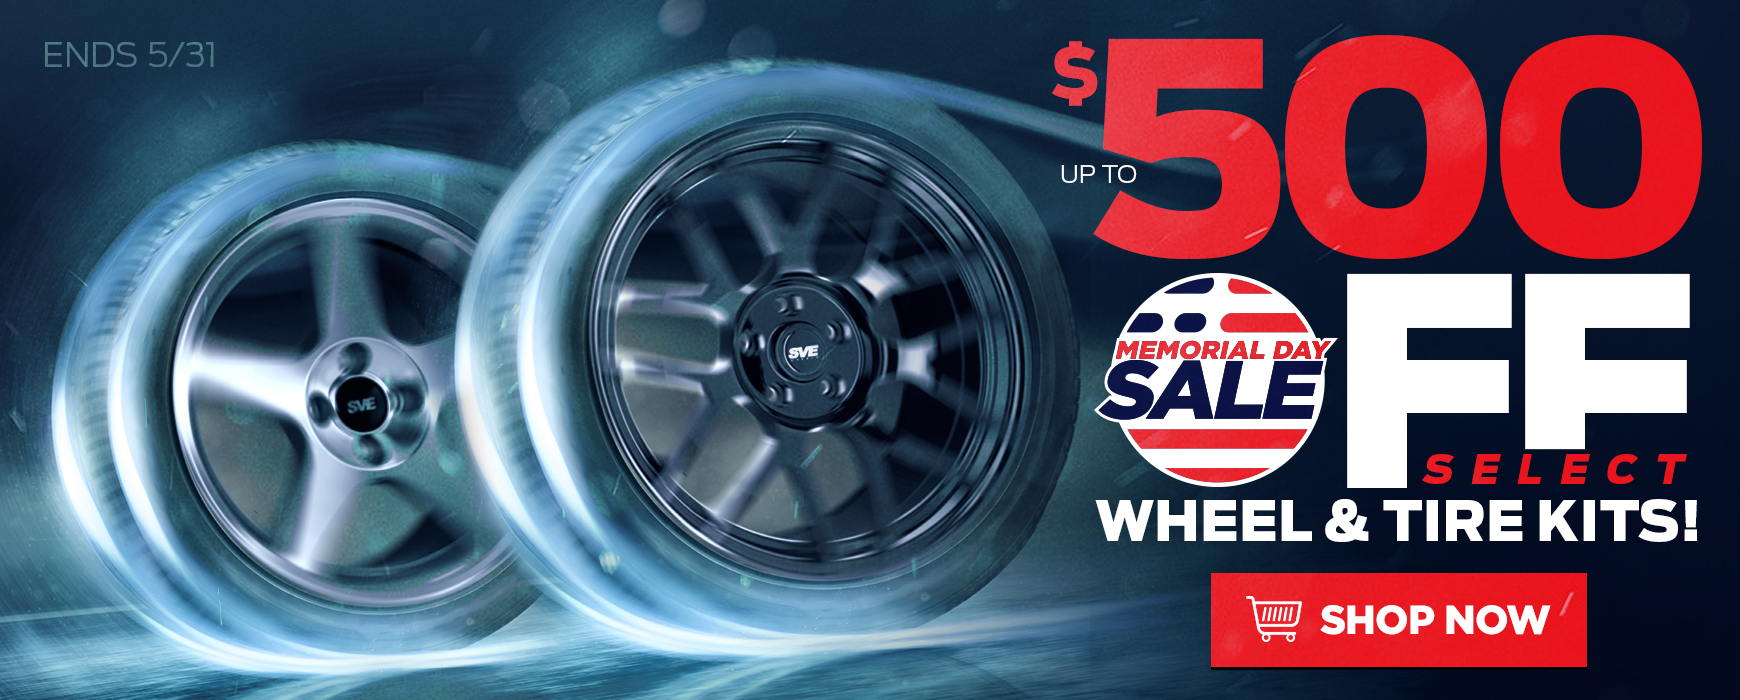 LMR Deals On Wheels Memorial Day Sale